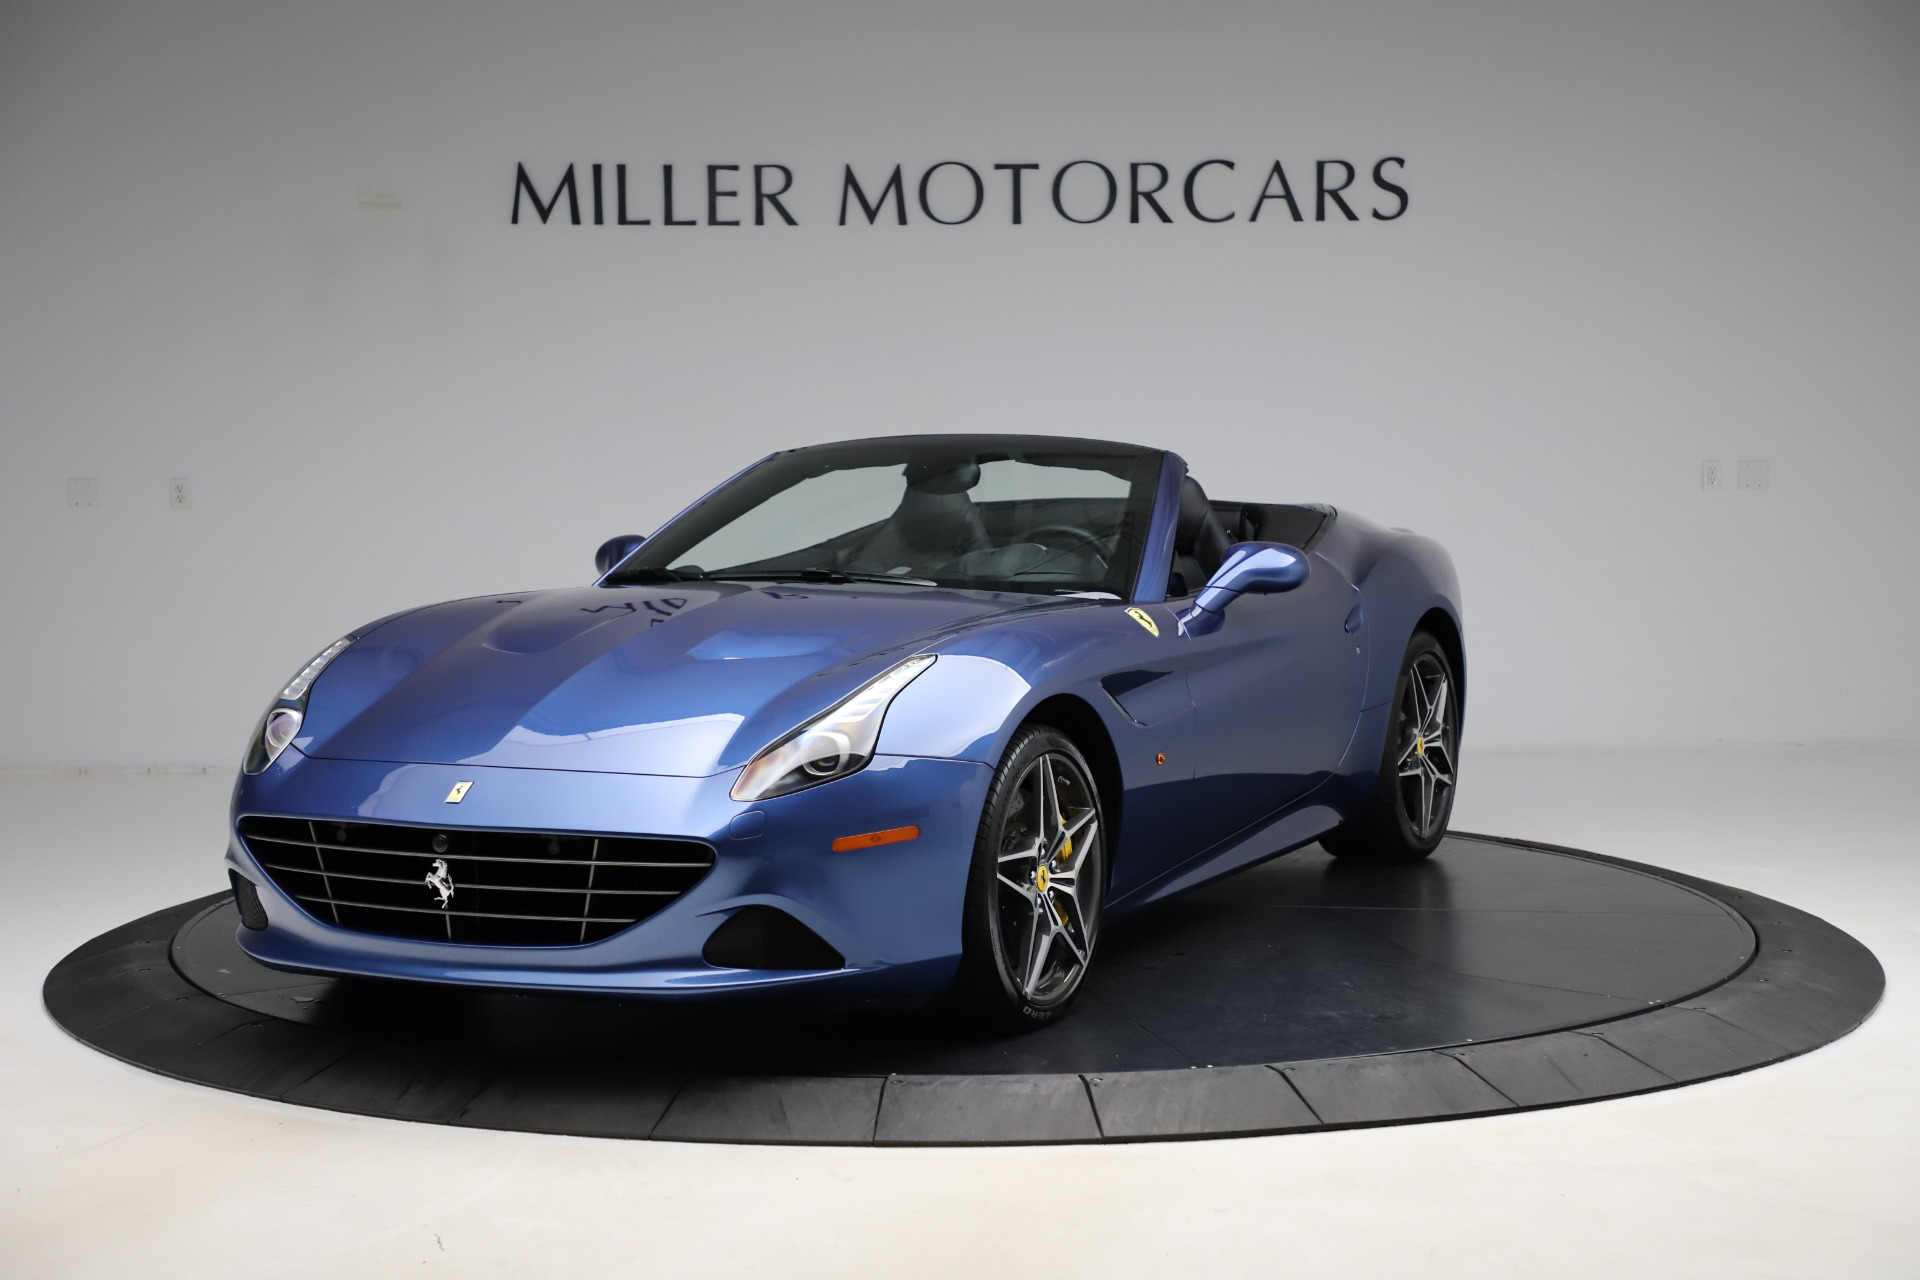 Used 2018 Ferrari California T for sale $185,900 at Rolls-Royce Motor Cars Greenwich in Greenwich CT 06830 1